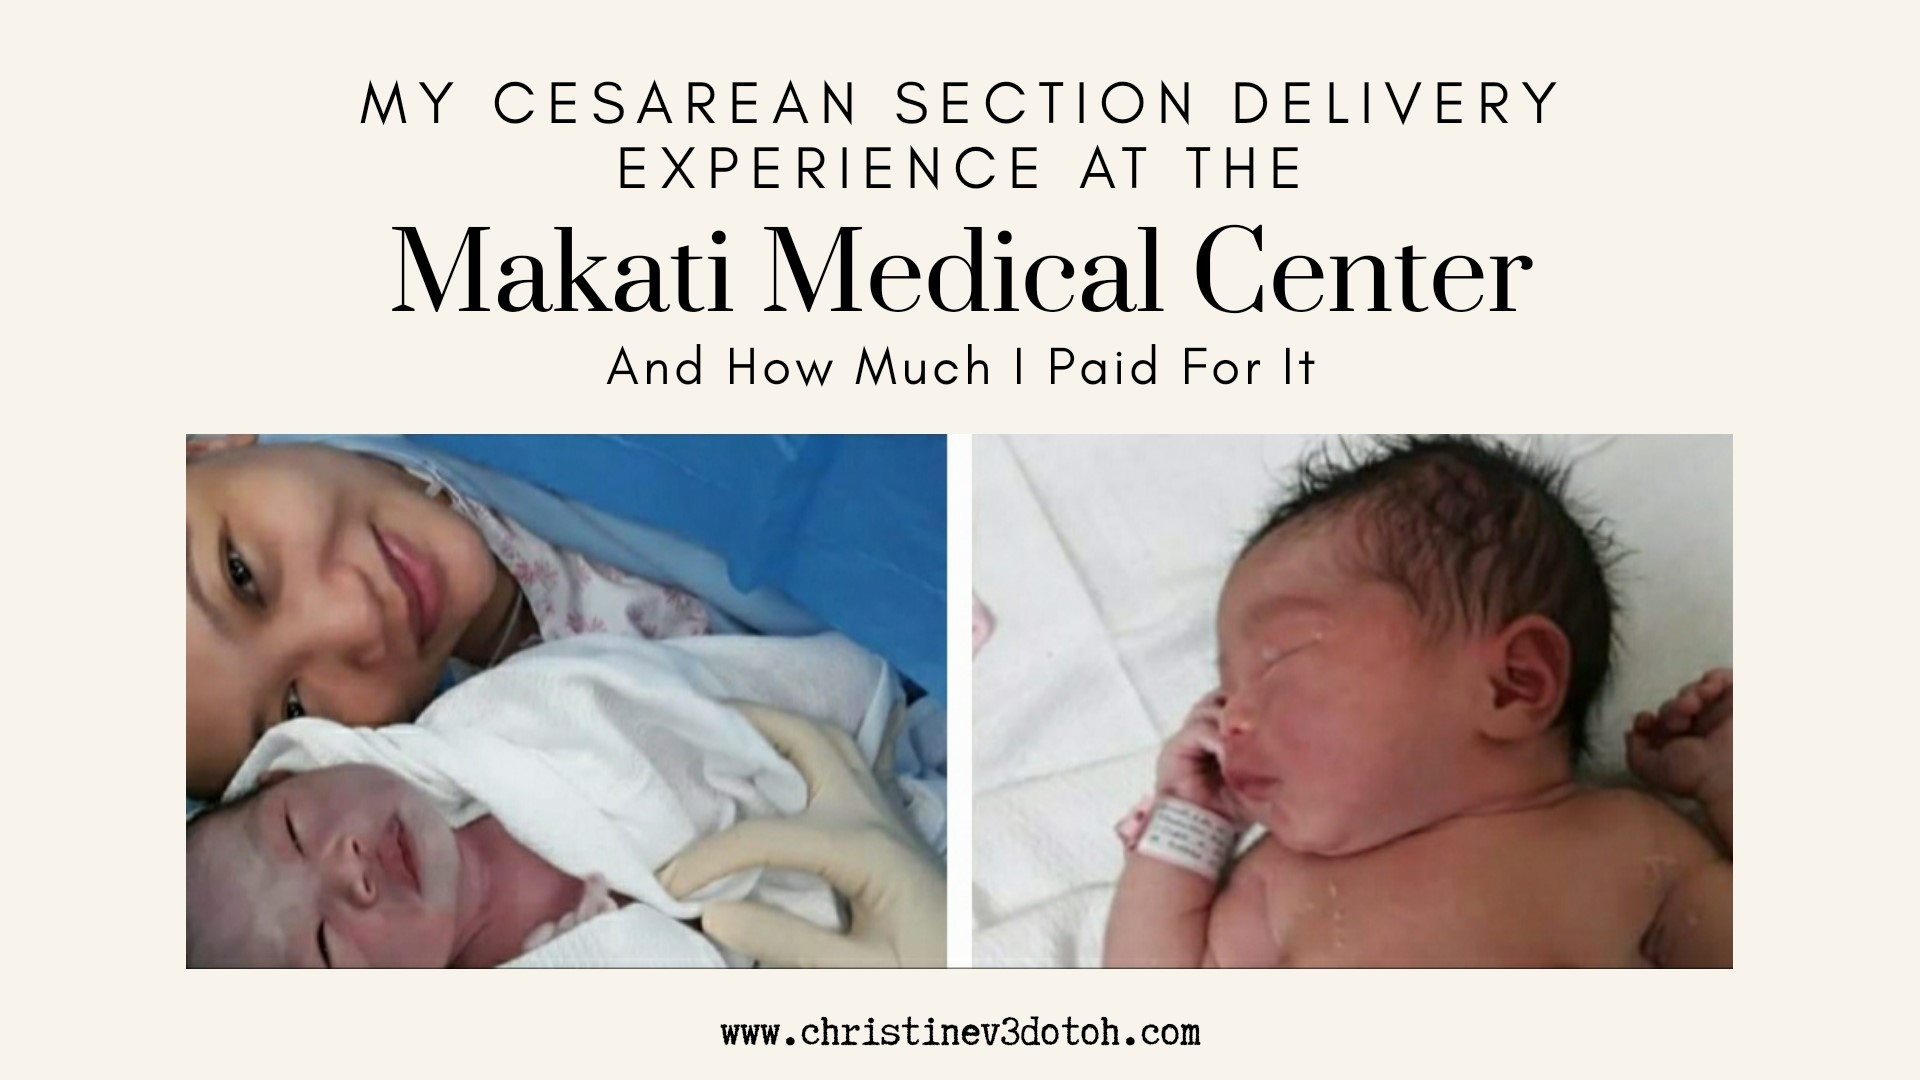 My Cesarean Section Delivery Experience at the Makati Medical Center (And How Much I Paid For It)